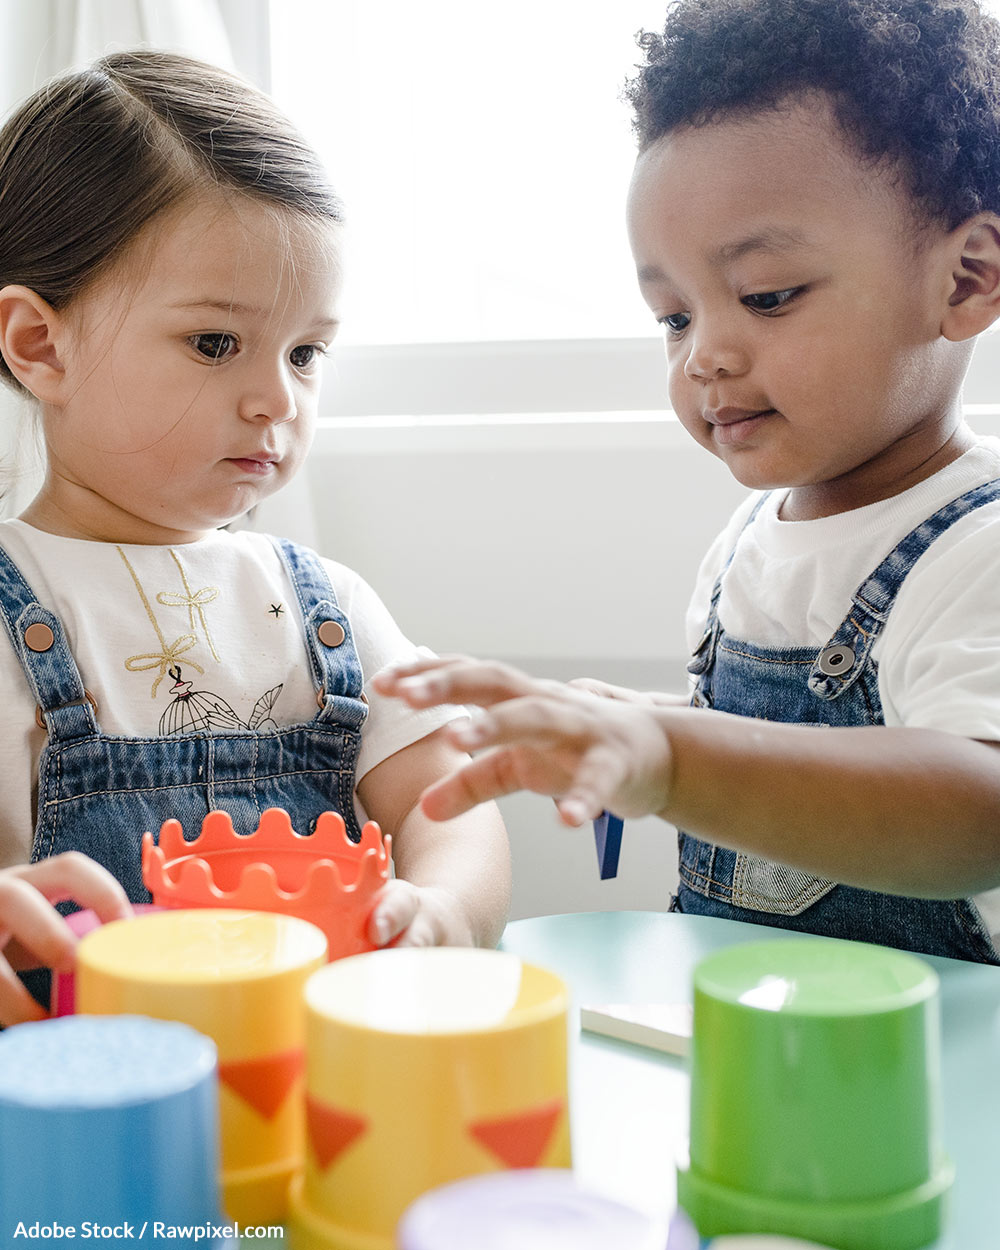 The American Families Plan will ensure low and middle-income families pay no more than 7 percent of their income on high-quality child care for children under 5 years-old, saving the average family $14,800 per year on child care expenses.